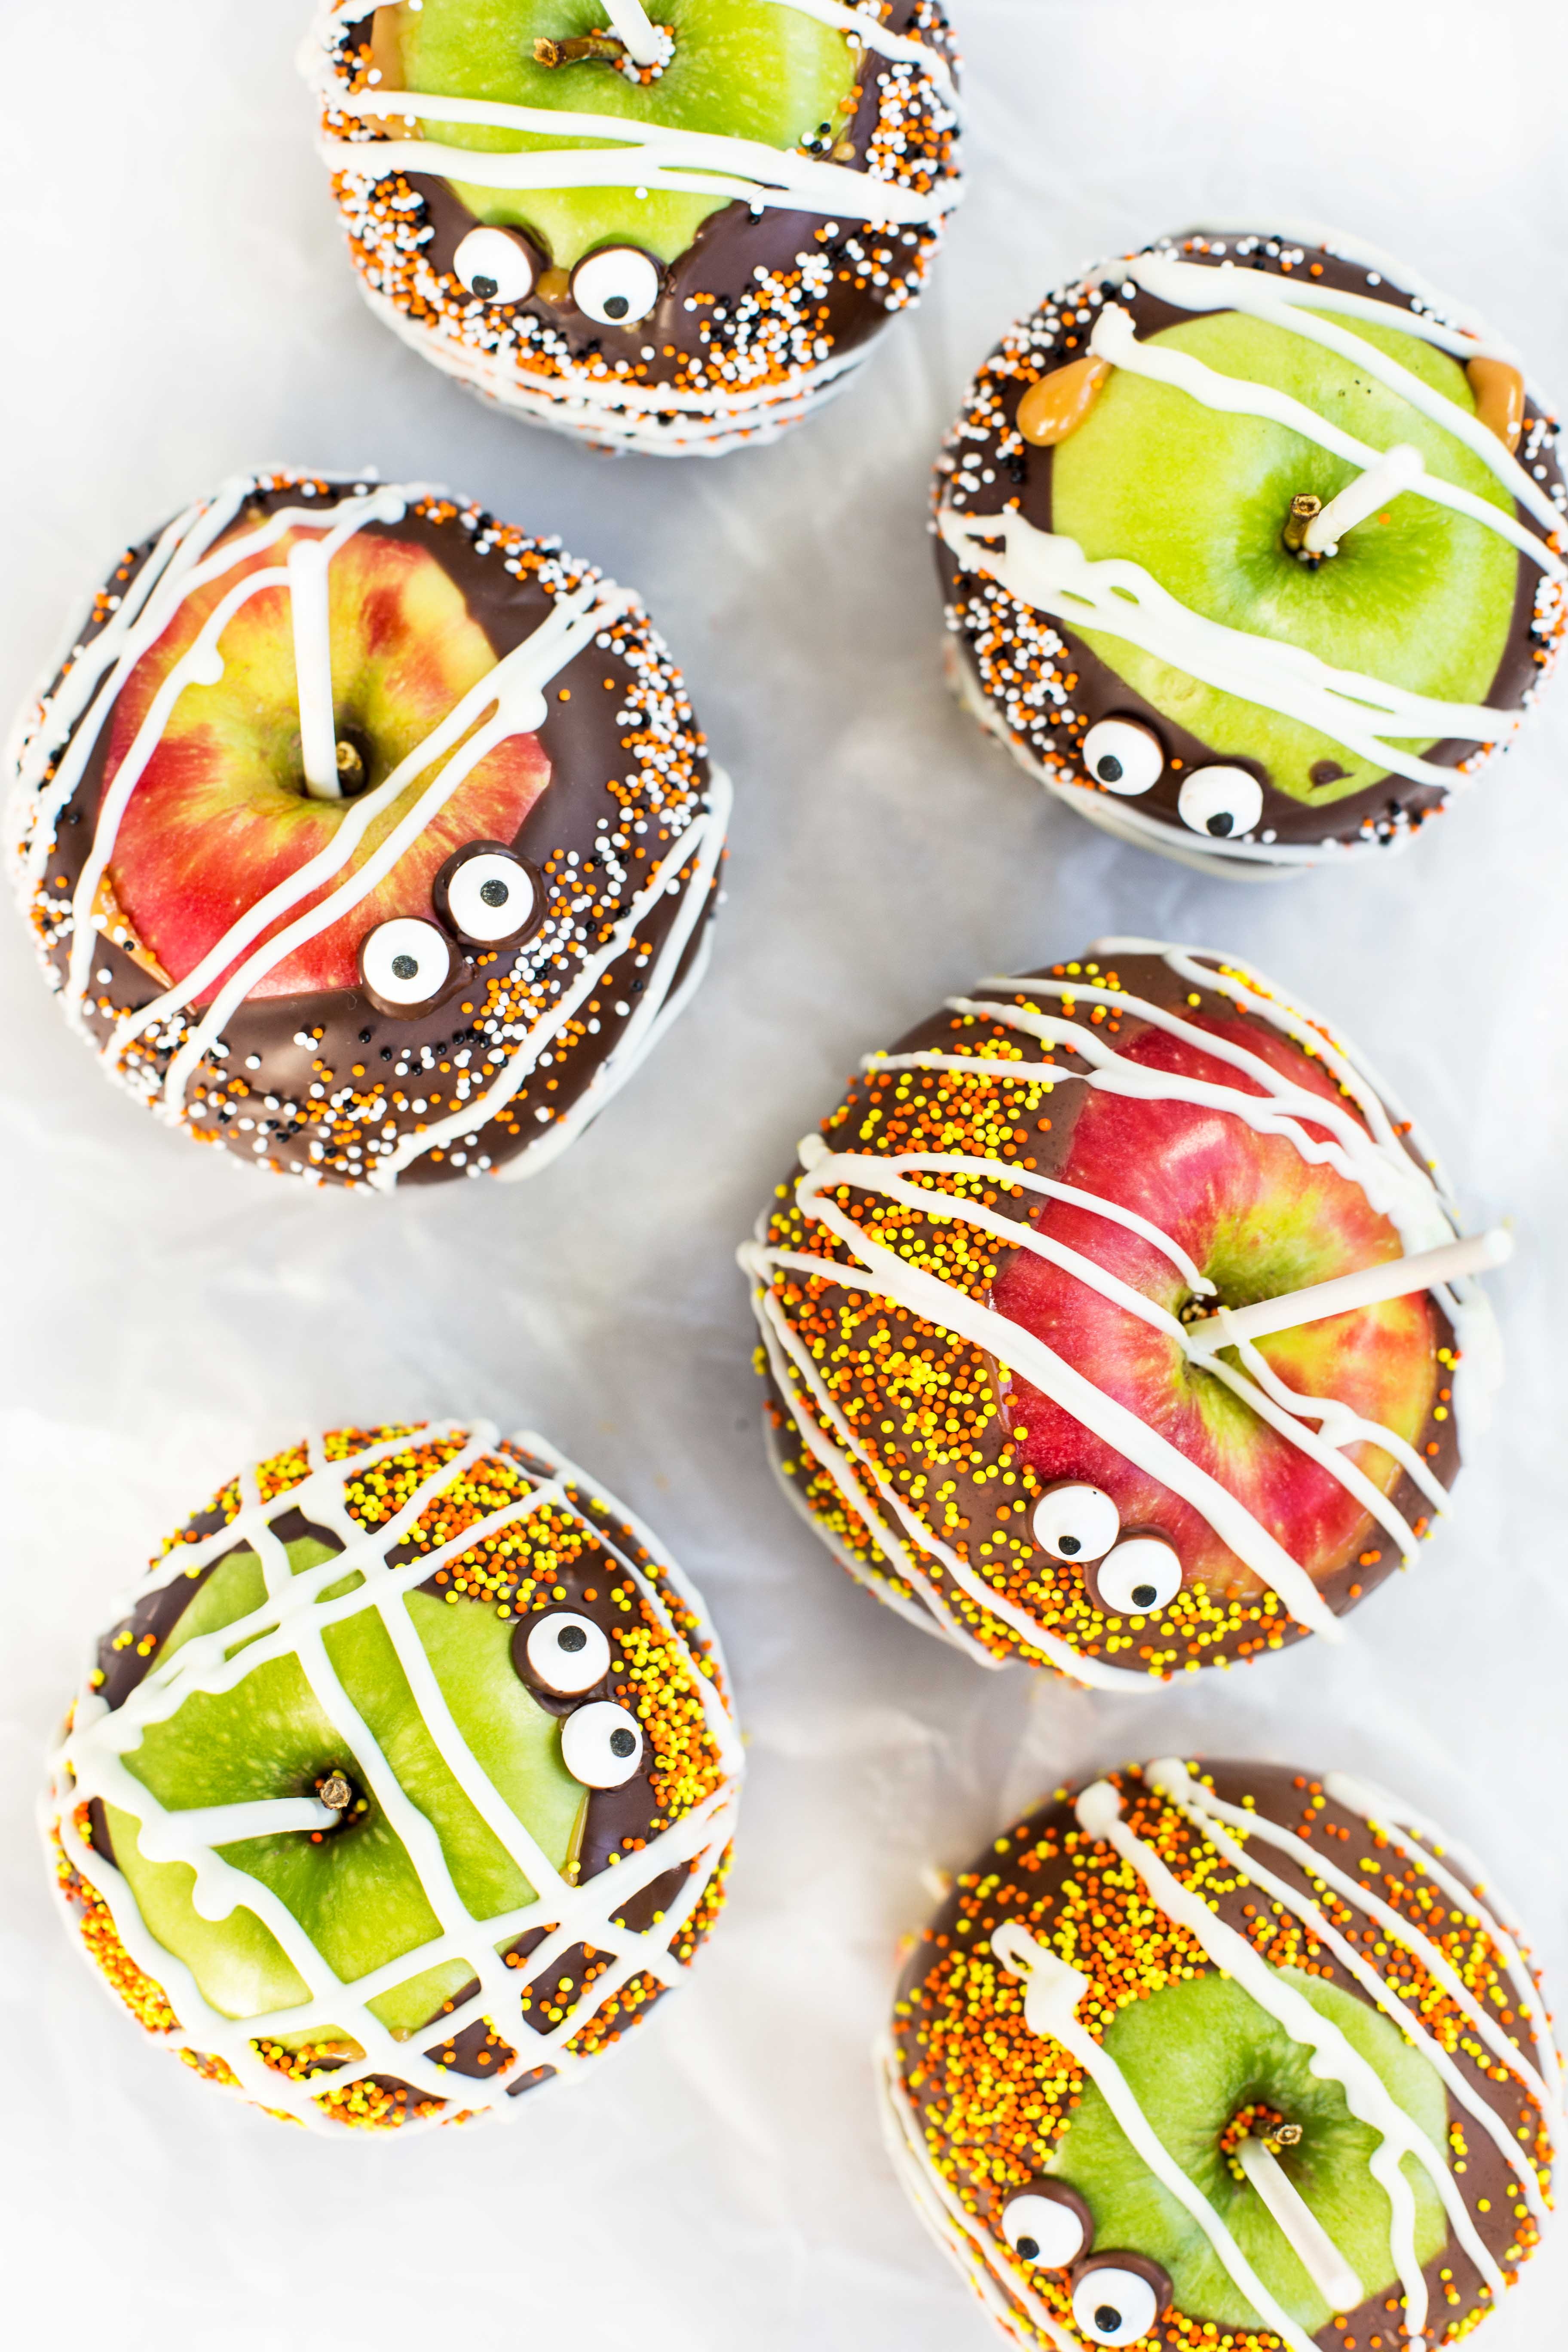 chocolate-caramel-candy-apples-above